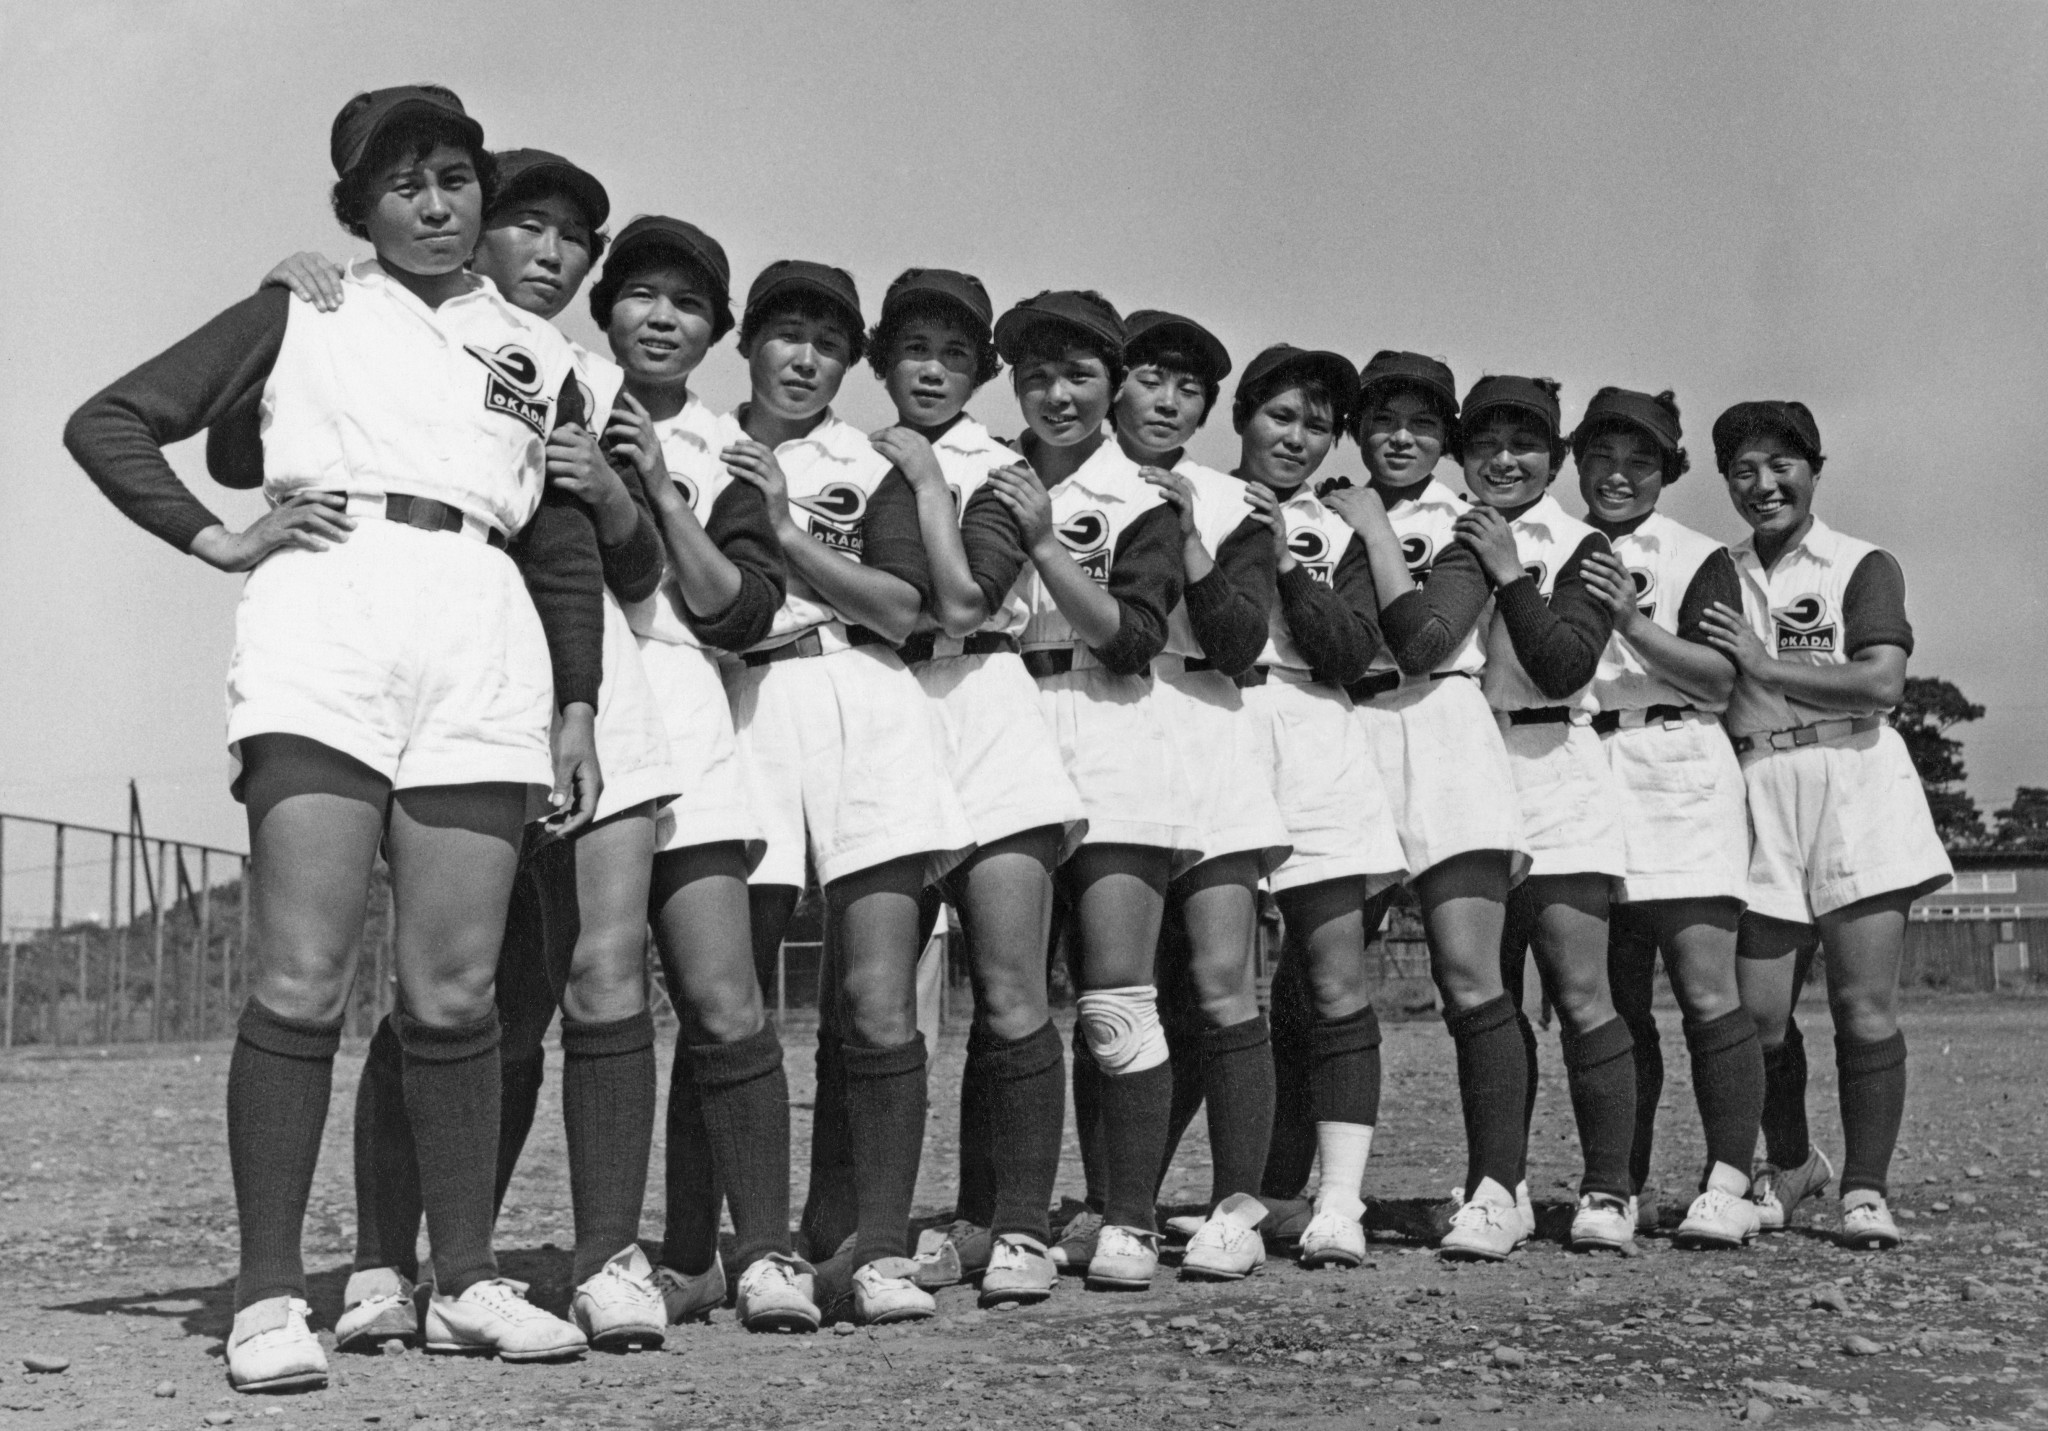 WBSC Integrity Unit to run courses focused on women's baseball and gender equality